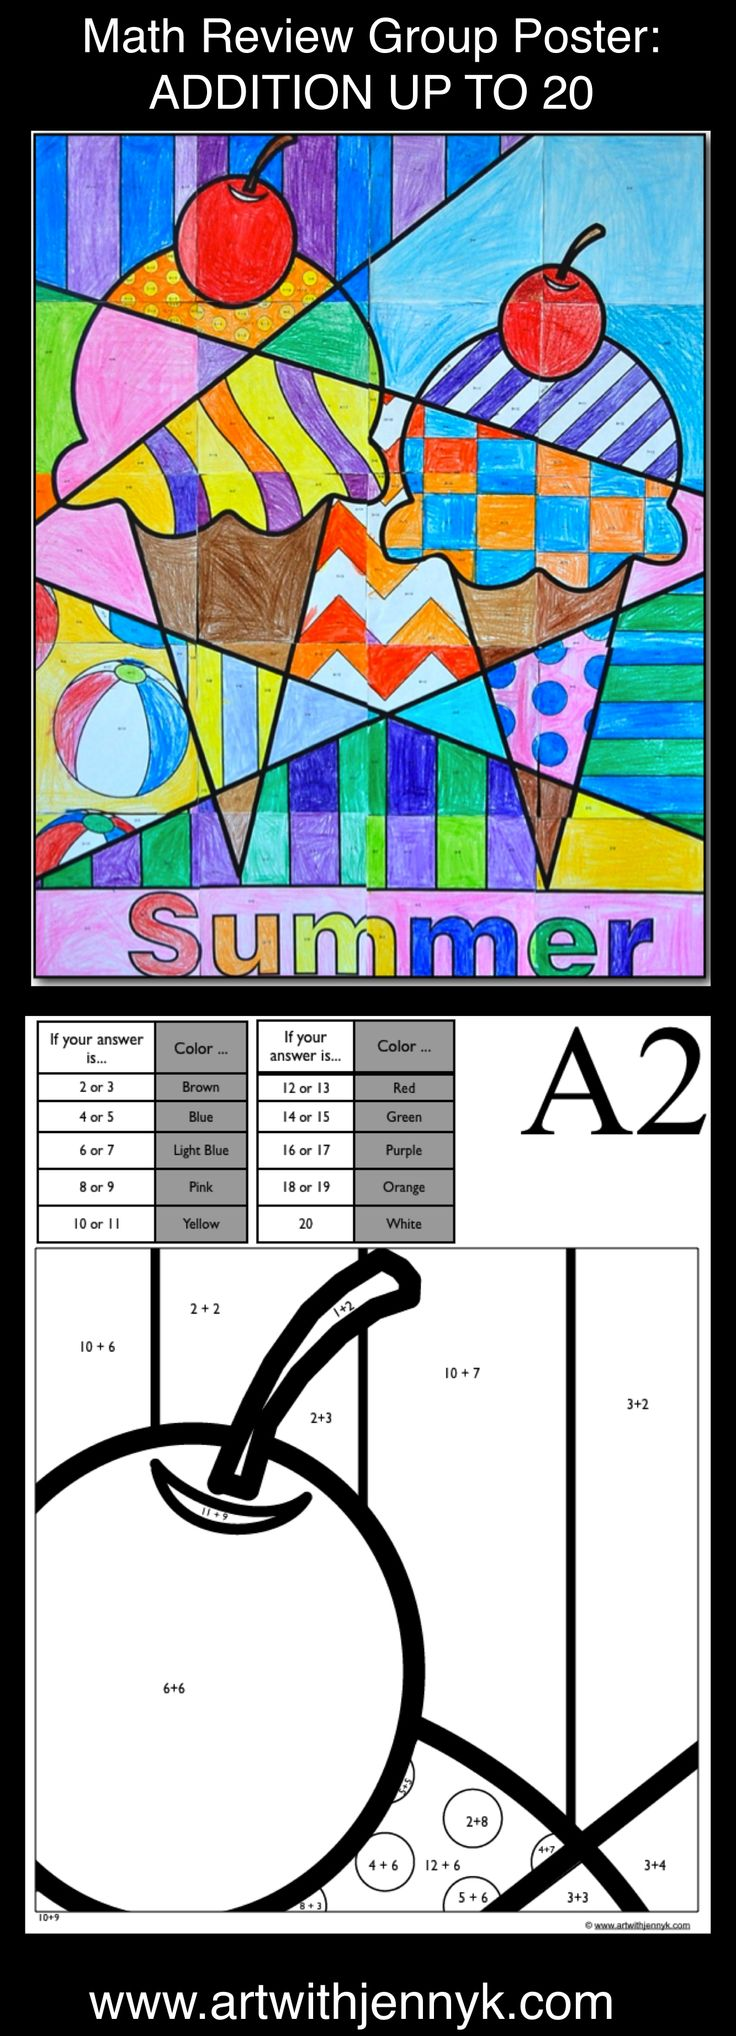 Use art to review math! The colors on every page of this large, classroom mosaic poster are assigned based on the answers to math problems written on each sheet. Addition up to 20 is reviewed on this poster. In the end you'll have a beautiful summer poster to display in your room or at your school!